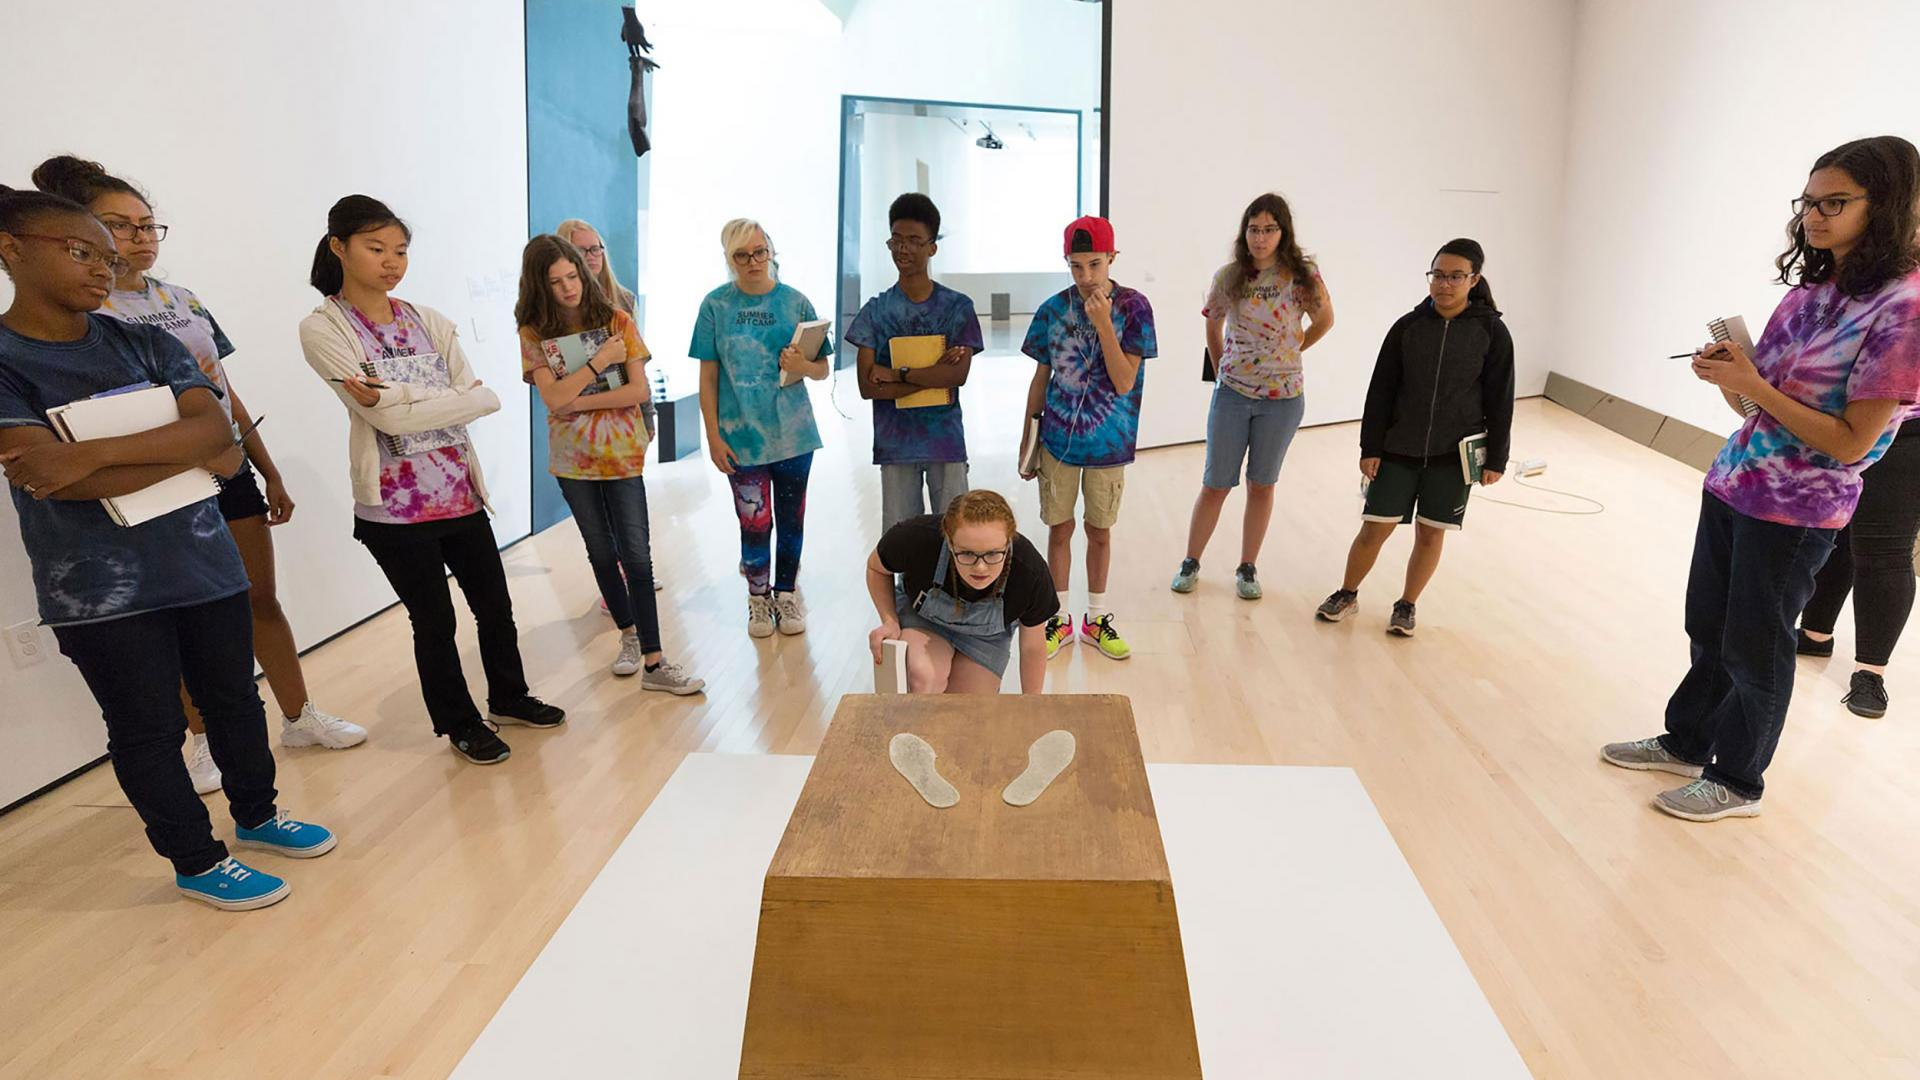 Students standing in a semi circle viewing artwork